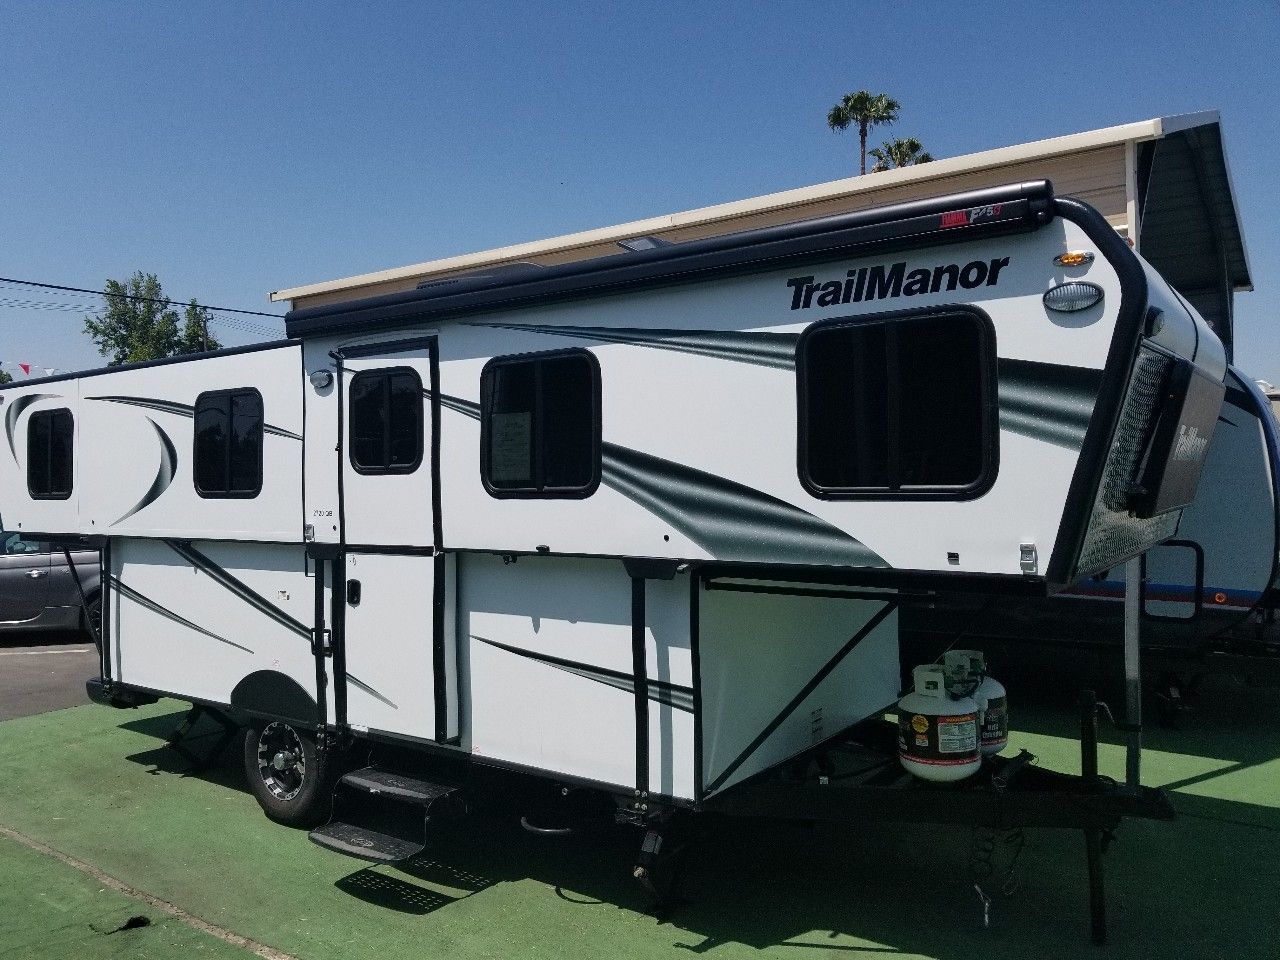 Check Out This 2018 Trailmanor 2720qb Listing In Ontario Ca 91762 On Rvtrader It Is A Pop Up Camper And For At 35995